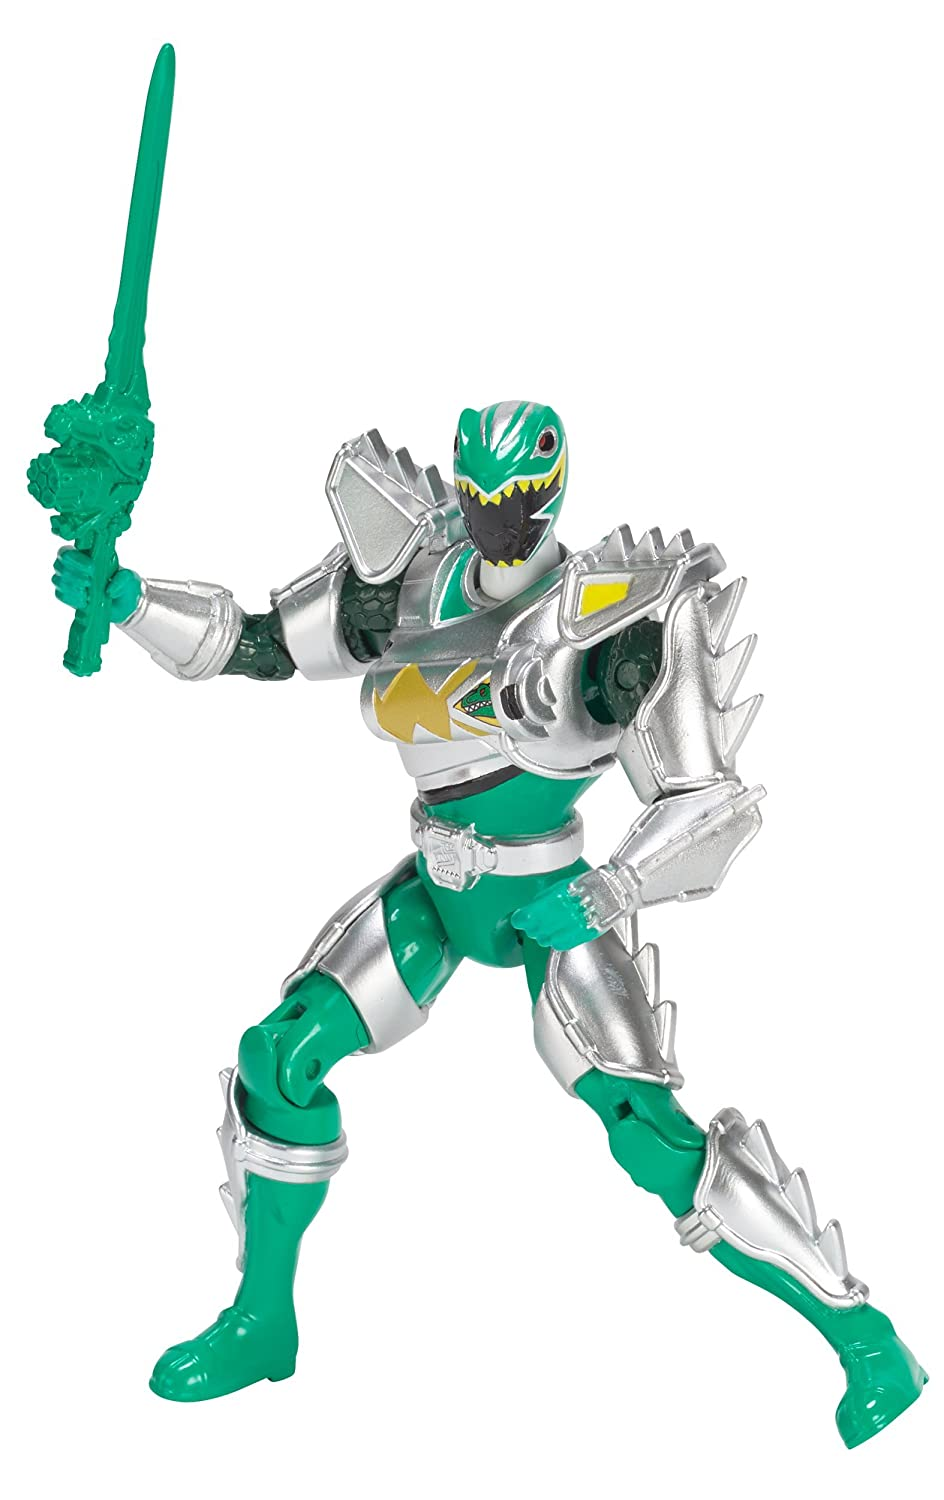 Power Rangers Dino Super Charge Dino Super Drive Green Ranger Action Figure 5 5 Bandai America Incorporated 43300